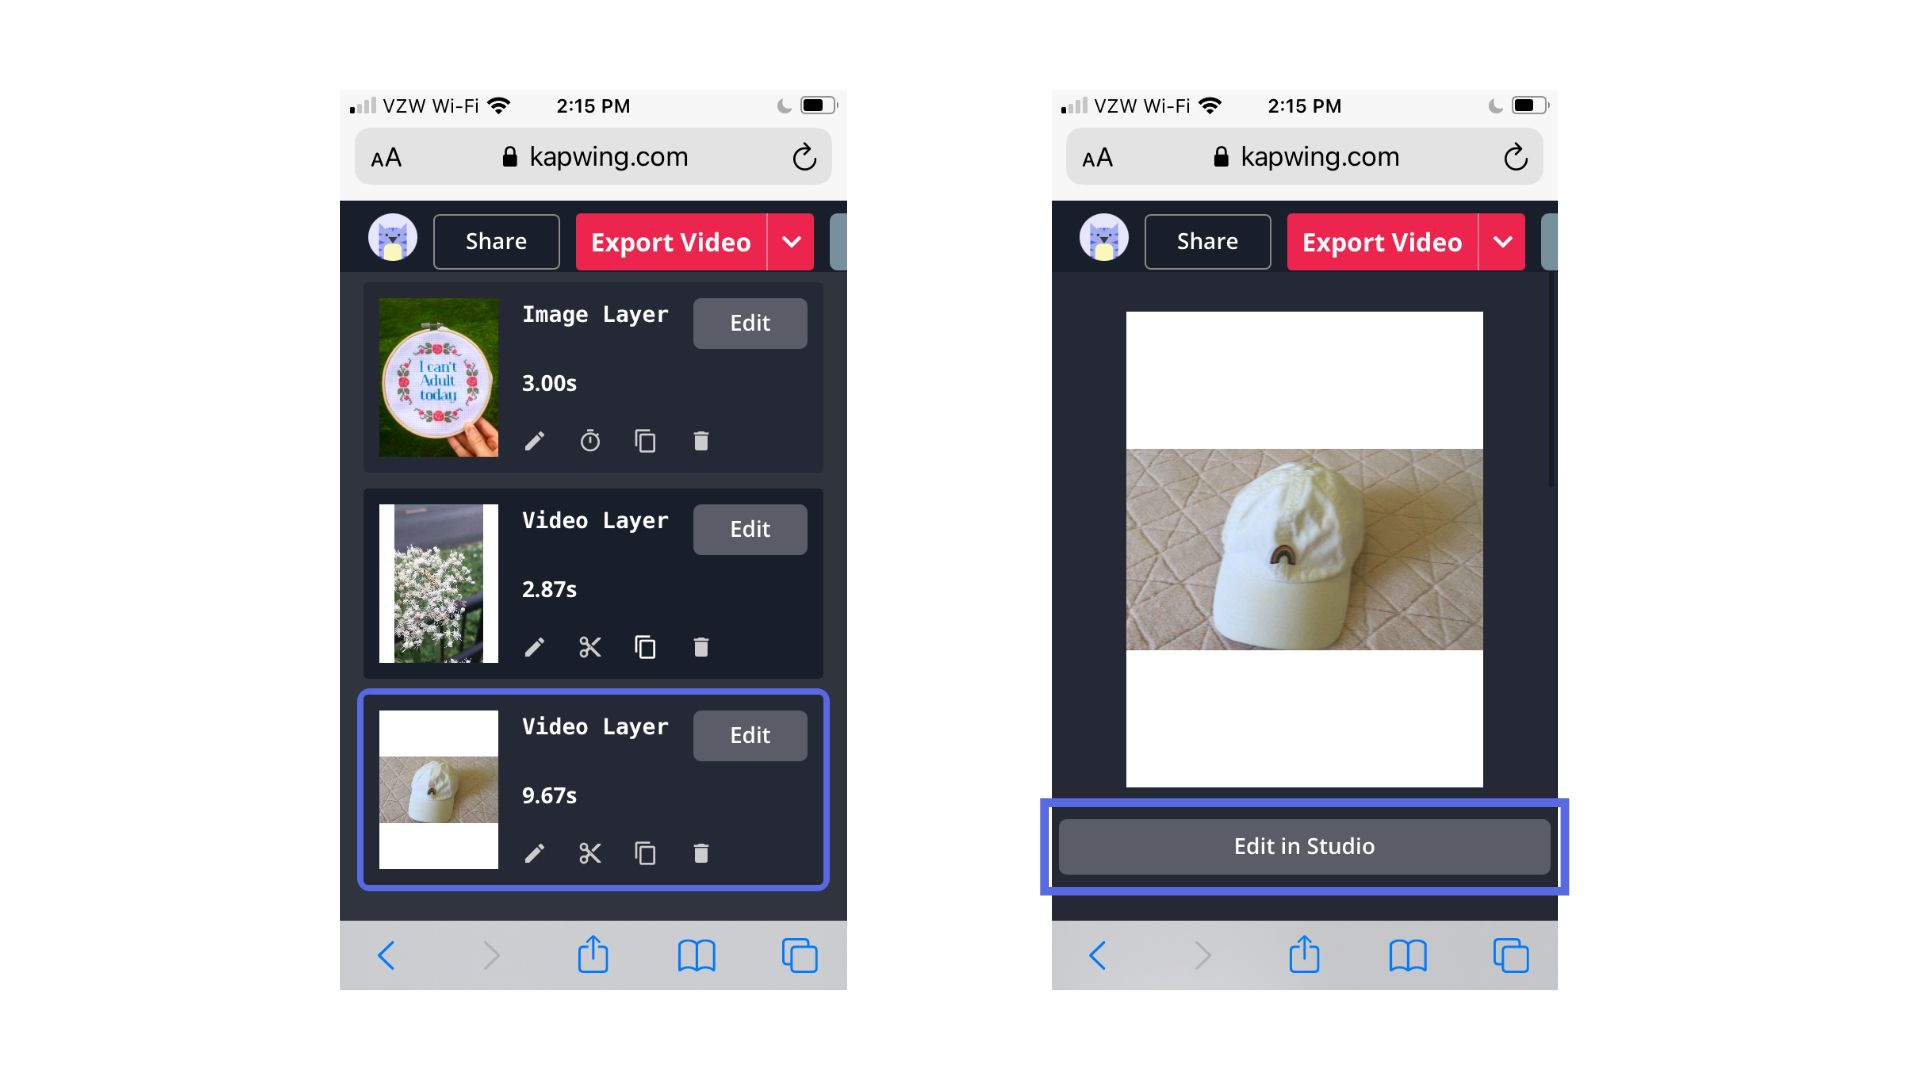 Screenshots from the Kapwing mobile Studio, showing how to make basic edits.